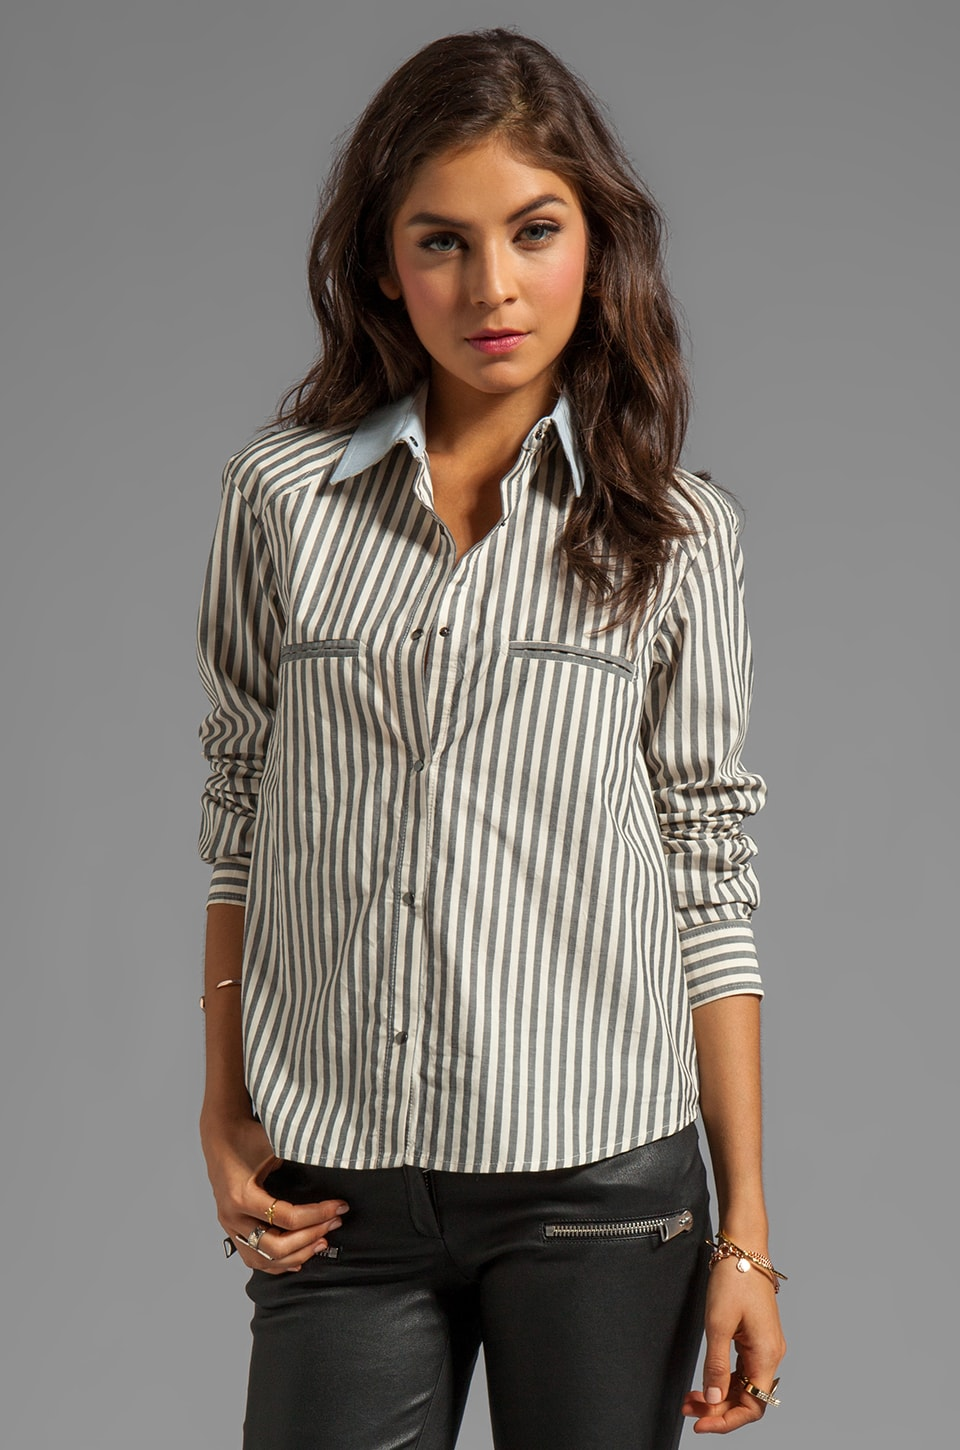 BY ZOE Louise Button Up in Grey/White